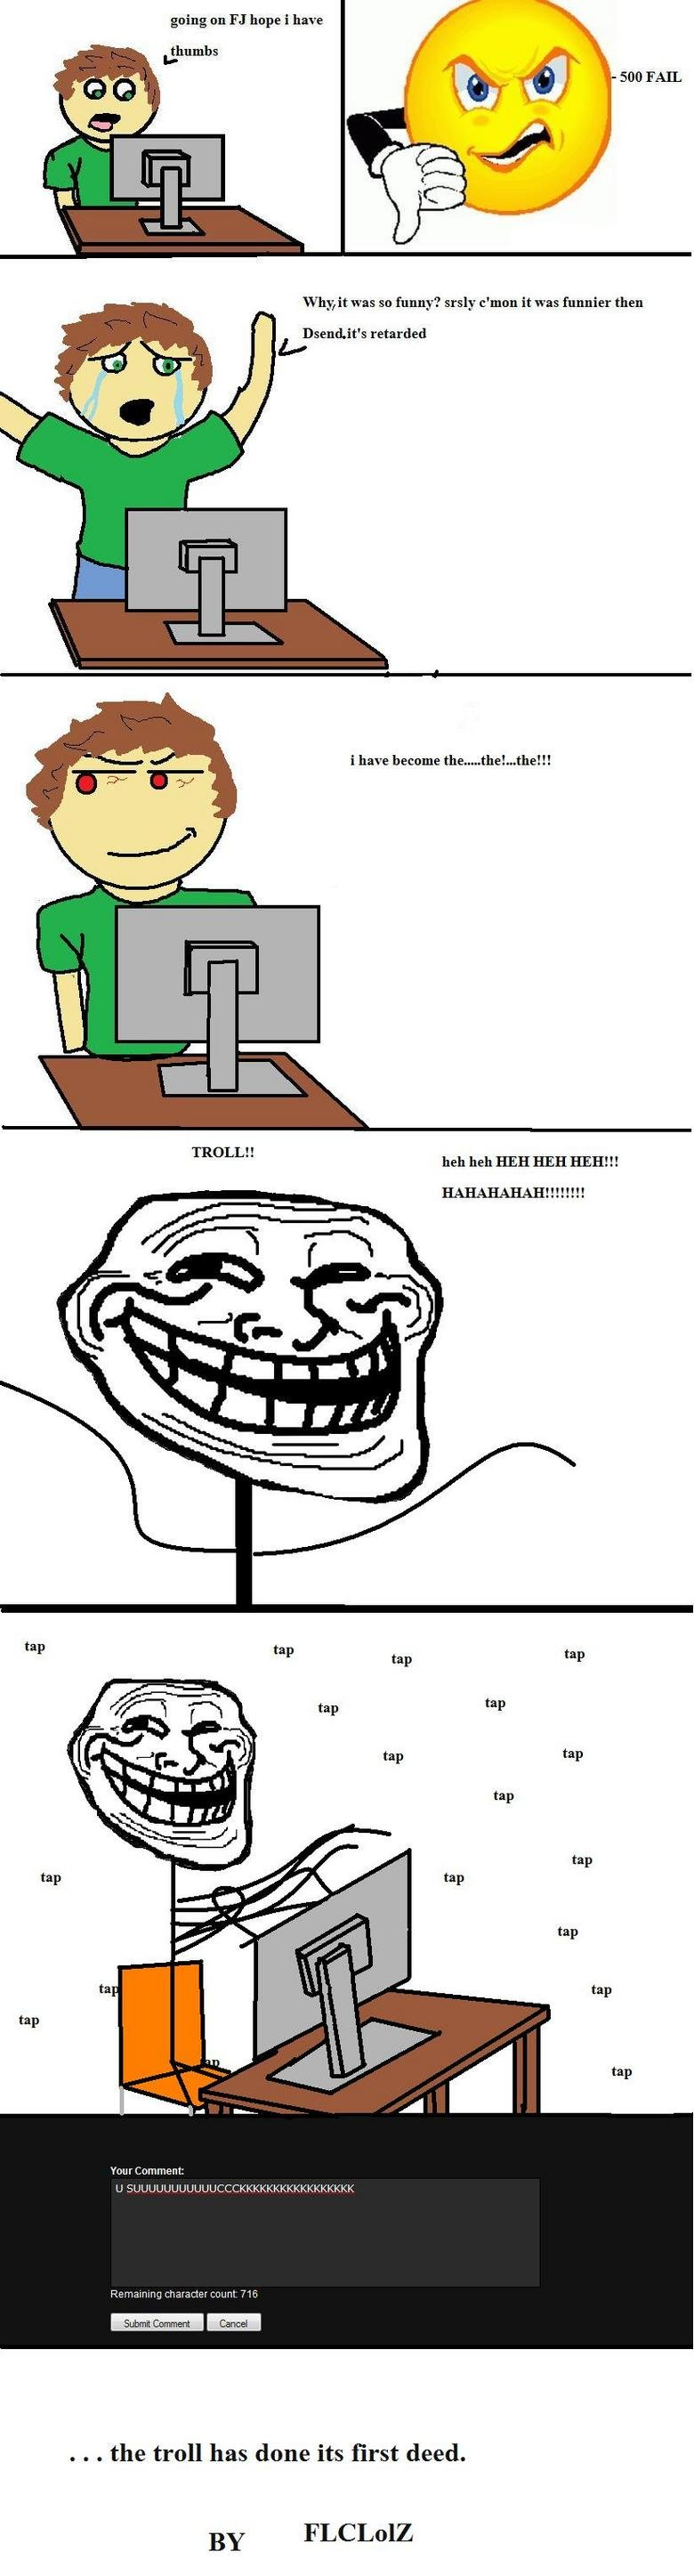 """The Troll's Origin. . going on hope i have thumbs why: was so funny? may c' nmn it was funnier then s retarded i have become the_ the!... the!!! TROLL"""" heh heh"""